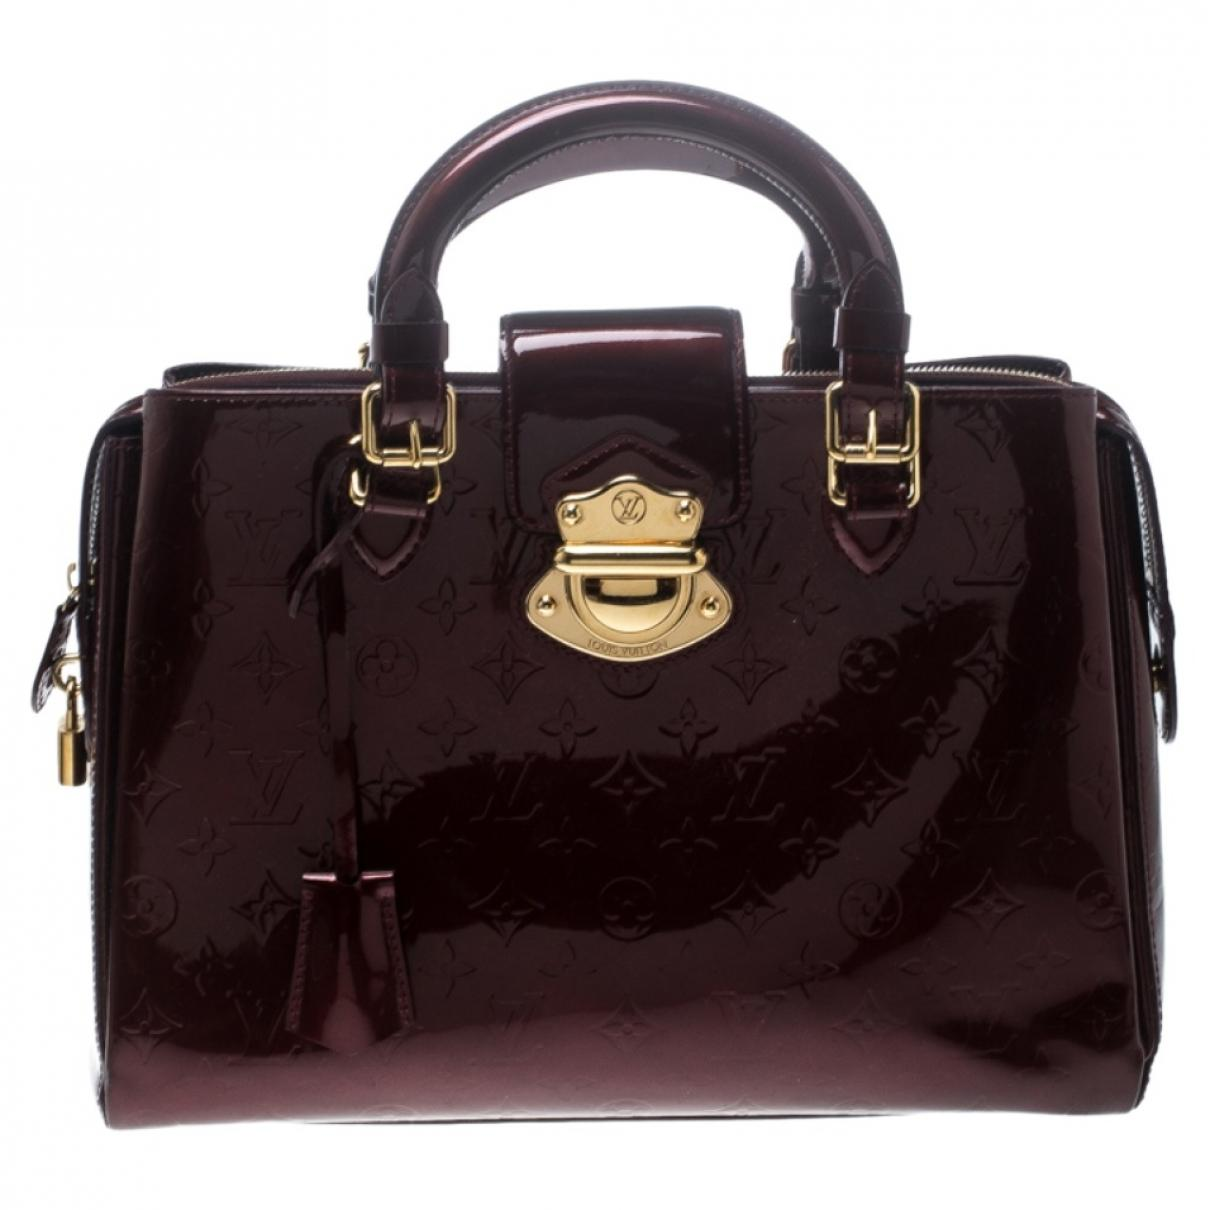 05e9ed90a264 Lyst Louis Vuitton Pre Owned Burgundy Patent Leather Handbags